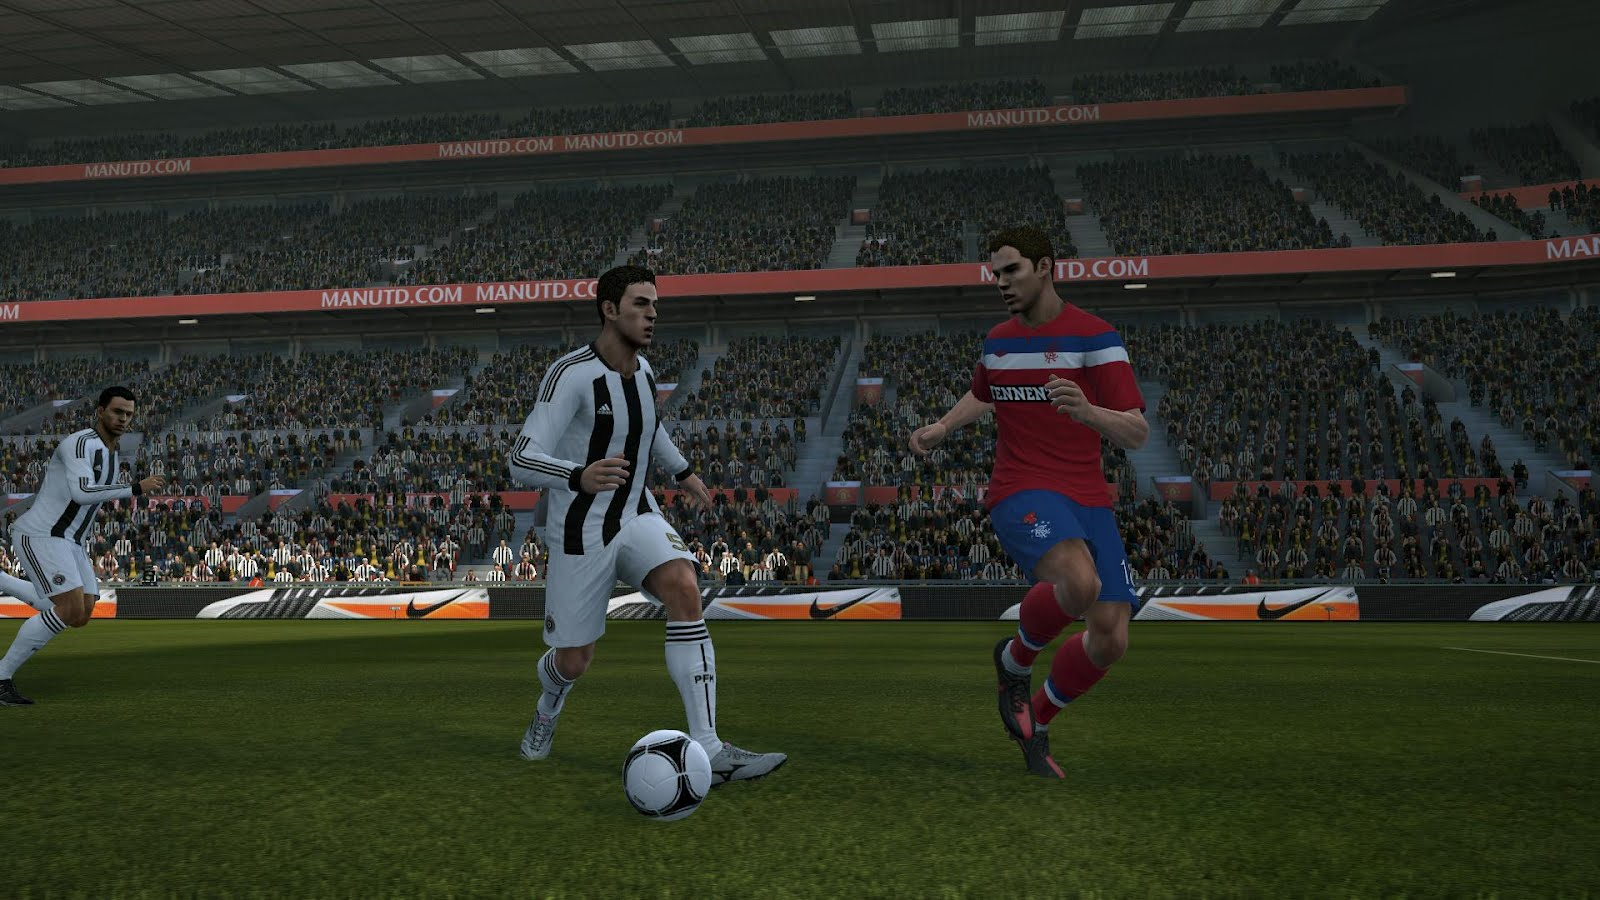 pes20122B2012 02 042B12 26 03 70 - PES 2012 FULL + PESEDIT Patch 2.8 (NEW) MEDIAFIRE